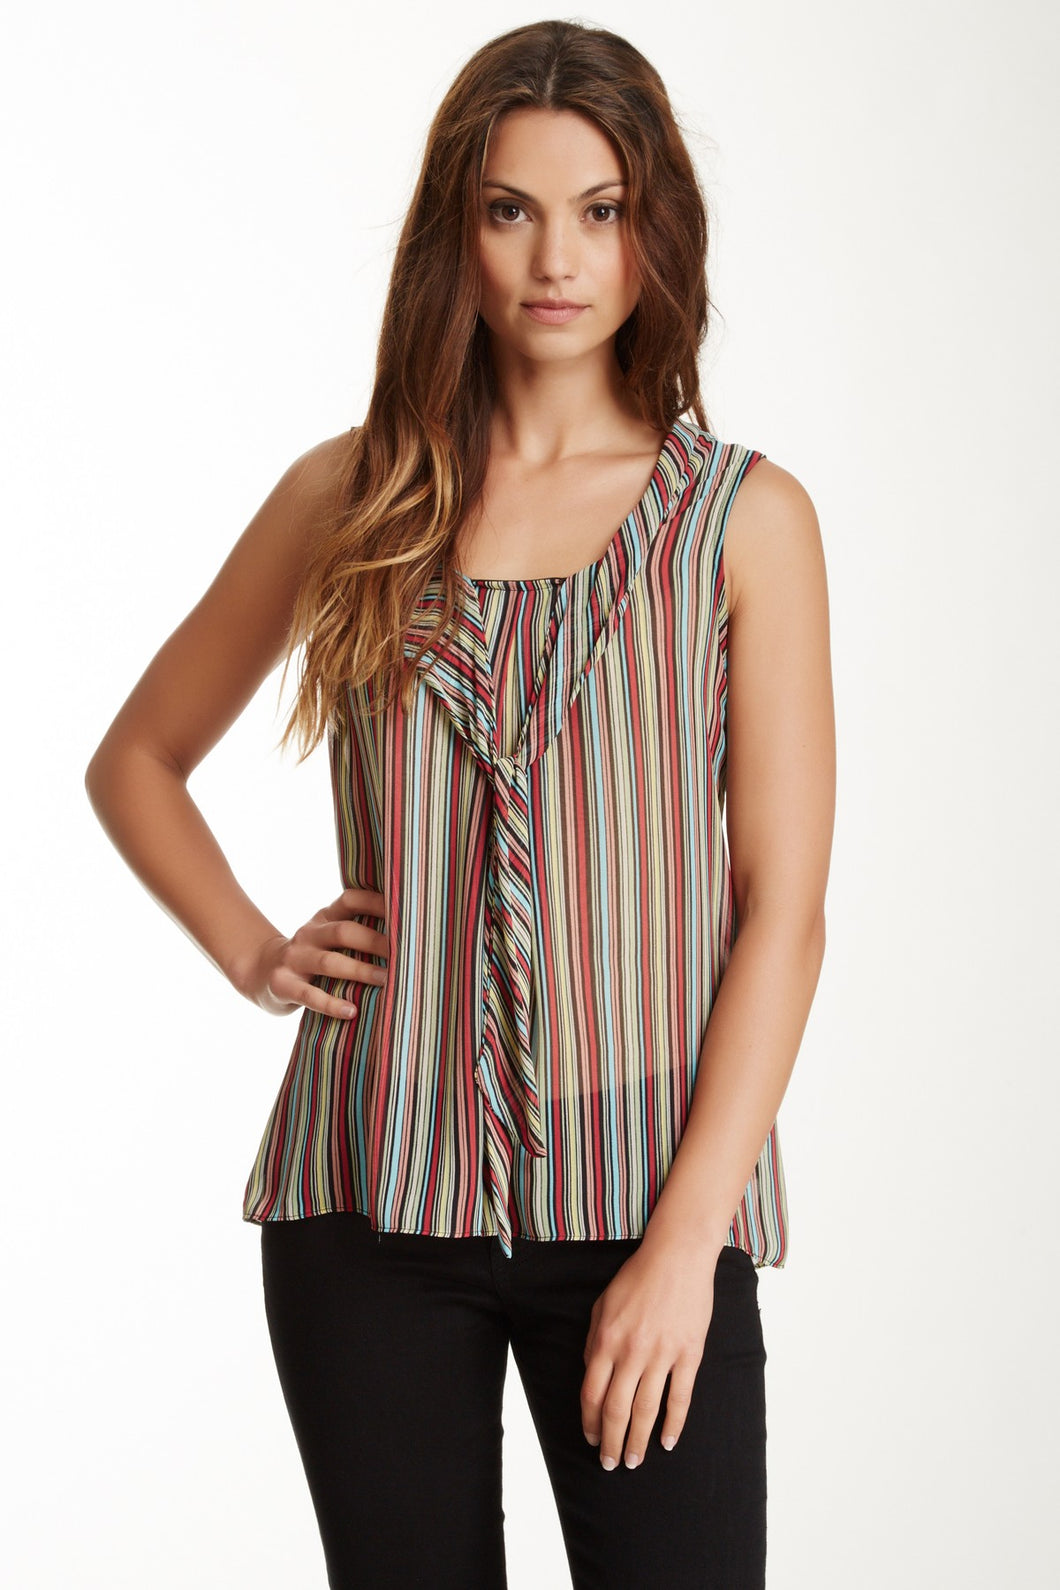 Sleeveless Scarf Neckline Top - Multi Stripe